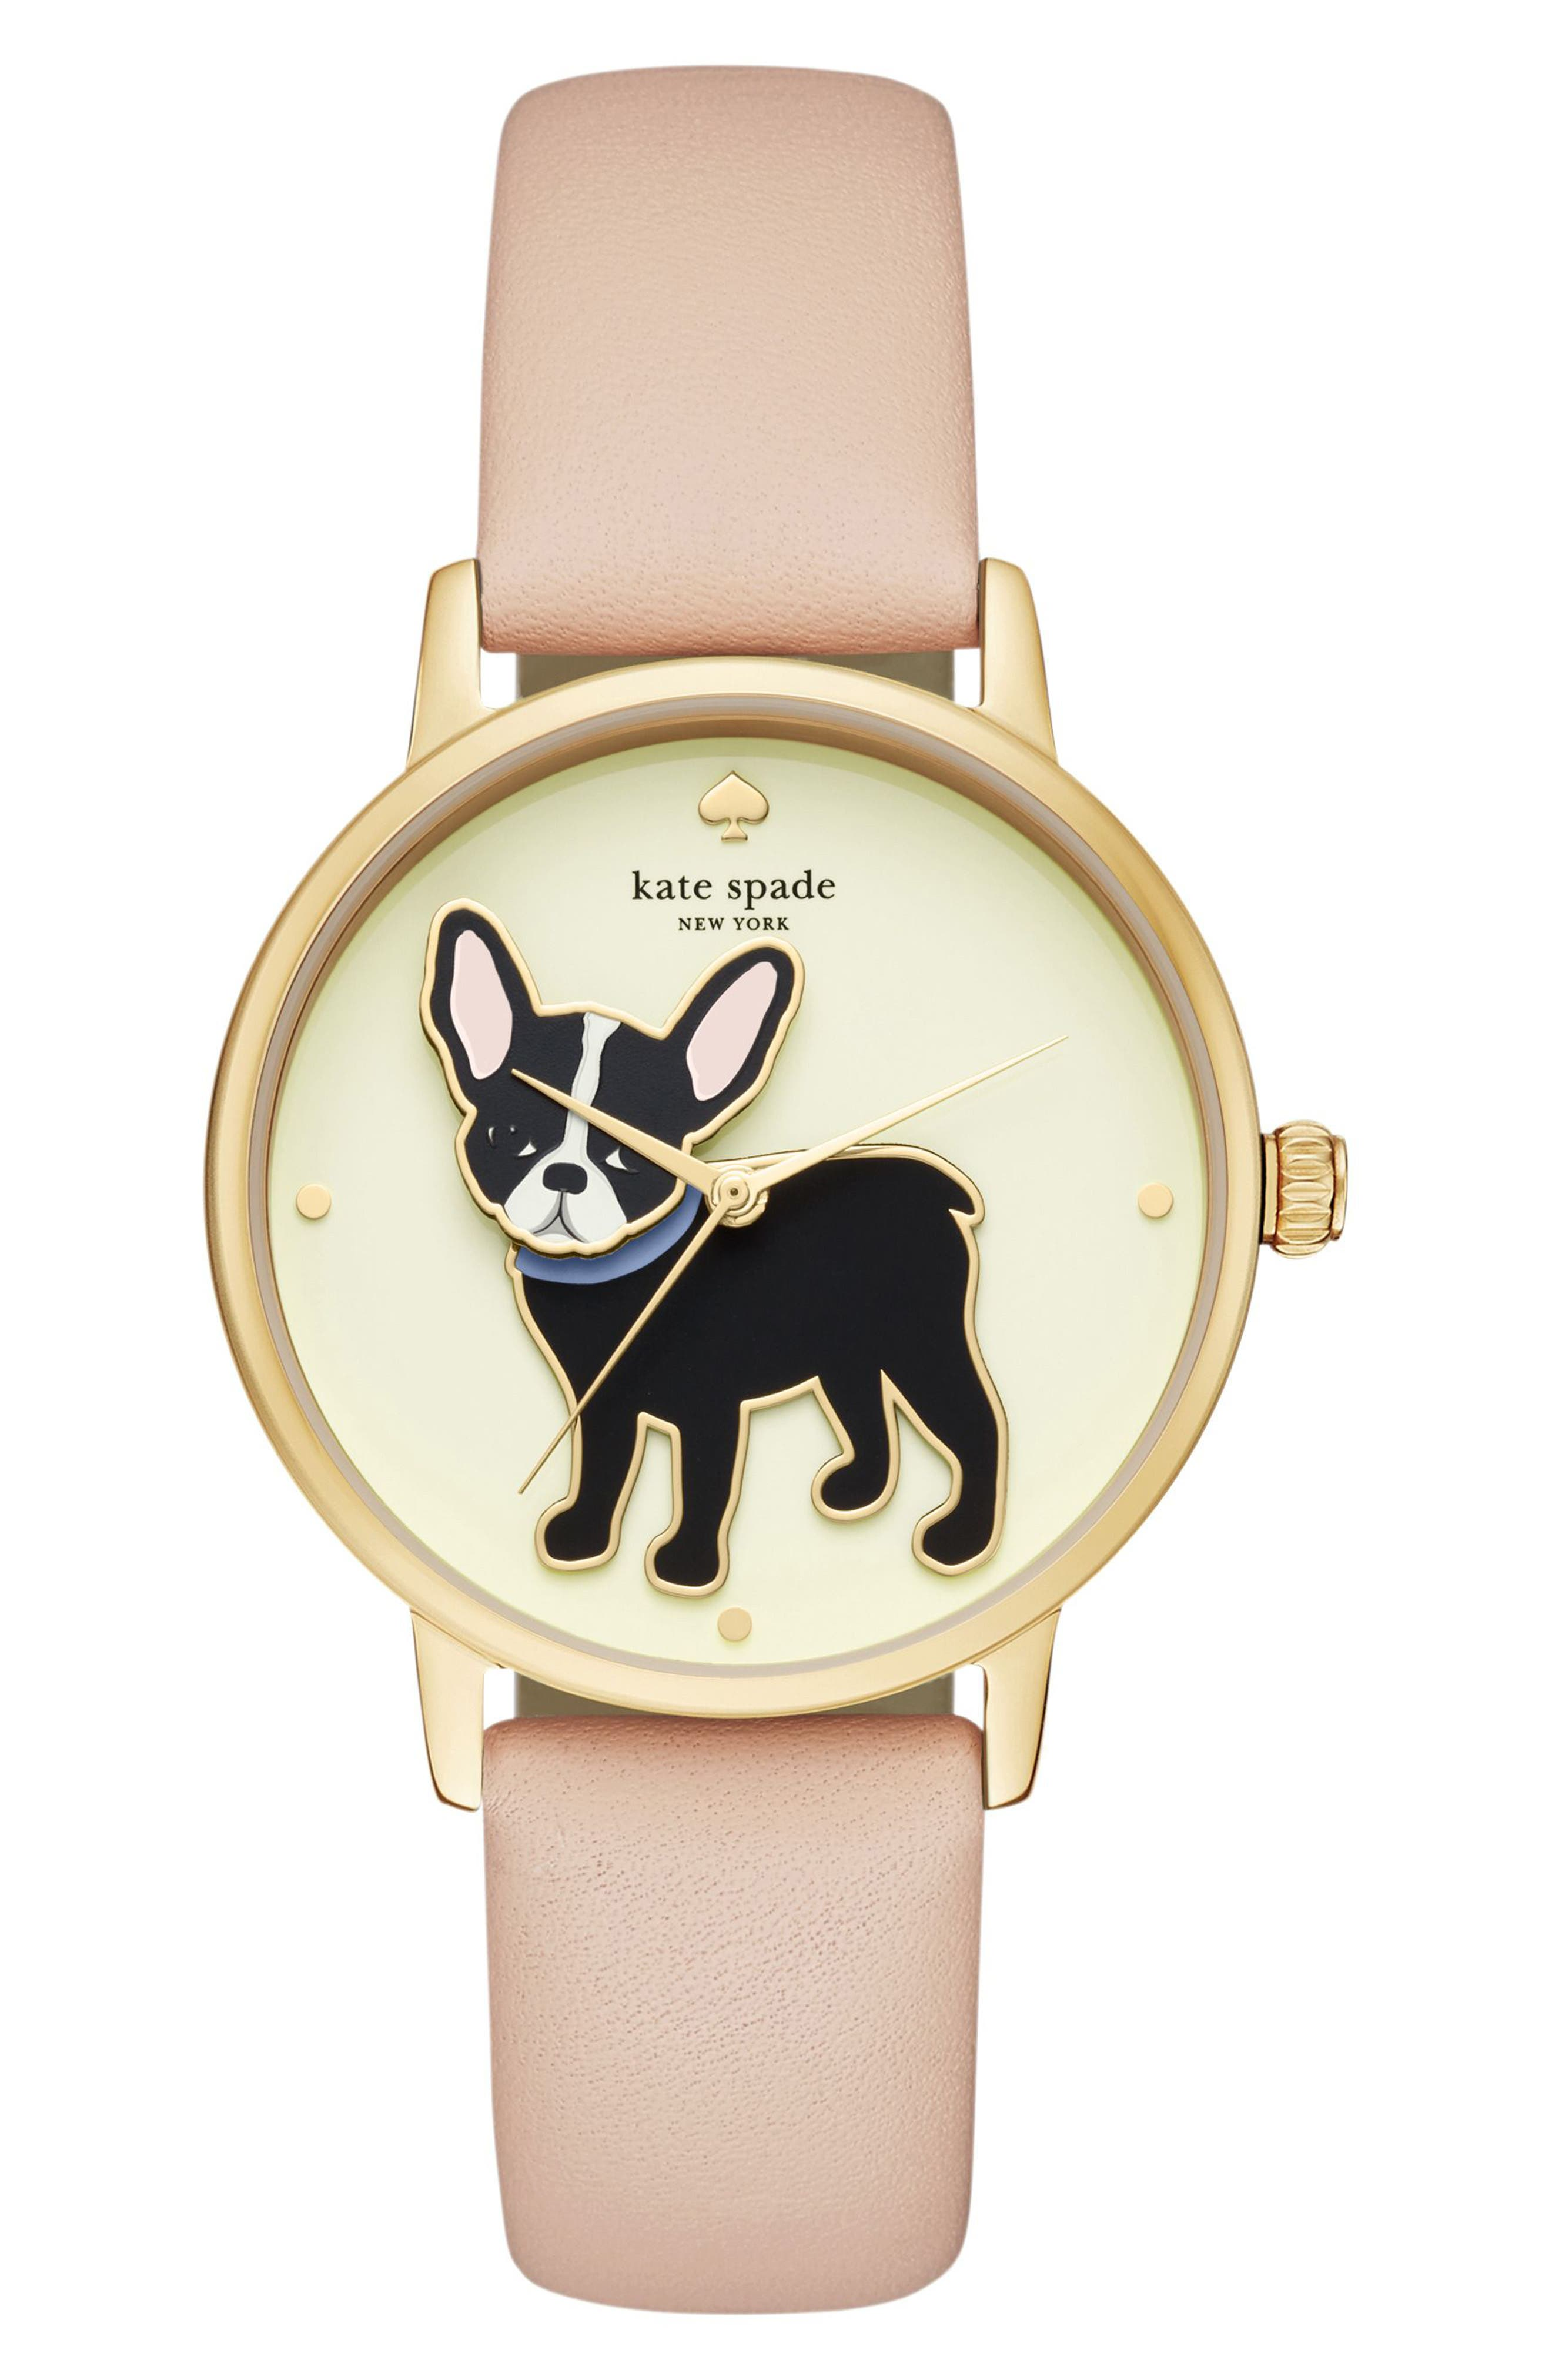 grand metro antoine leather strap watch, 38mm,                             Main thumbnail 1, color,                             NUDE/ CREAM/ GOLD